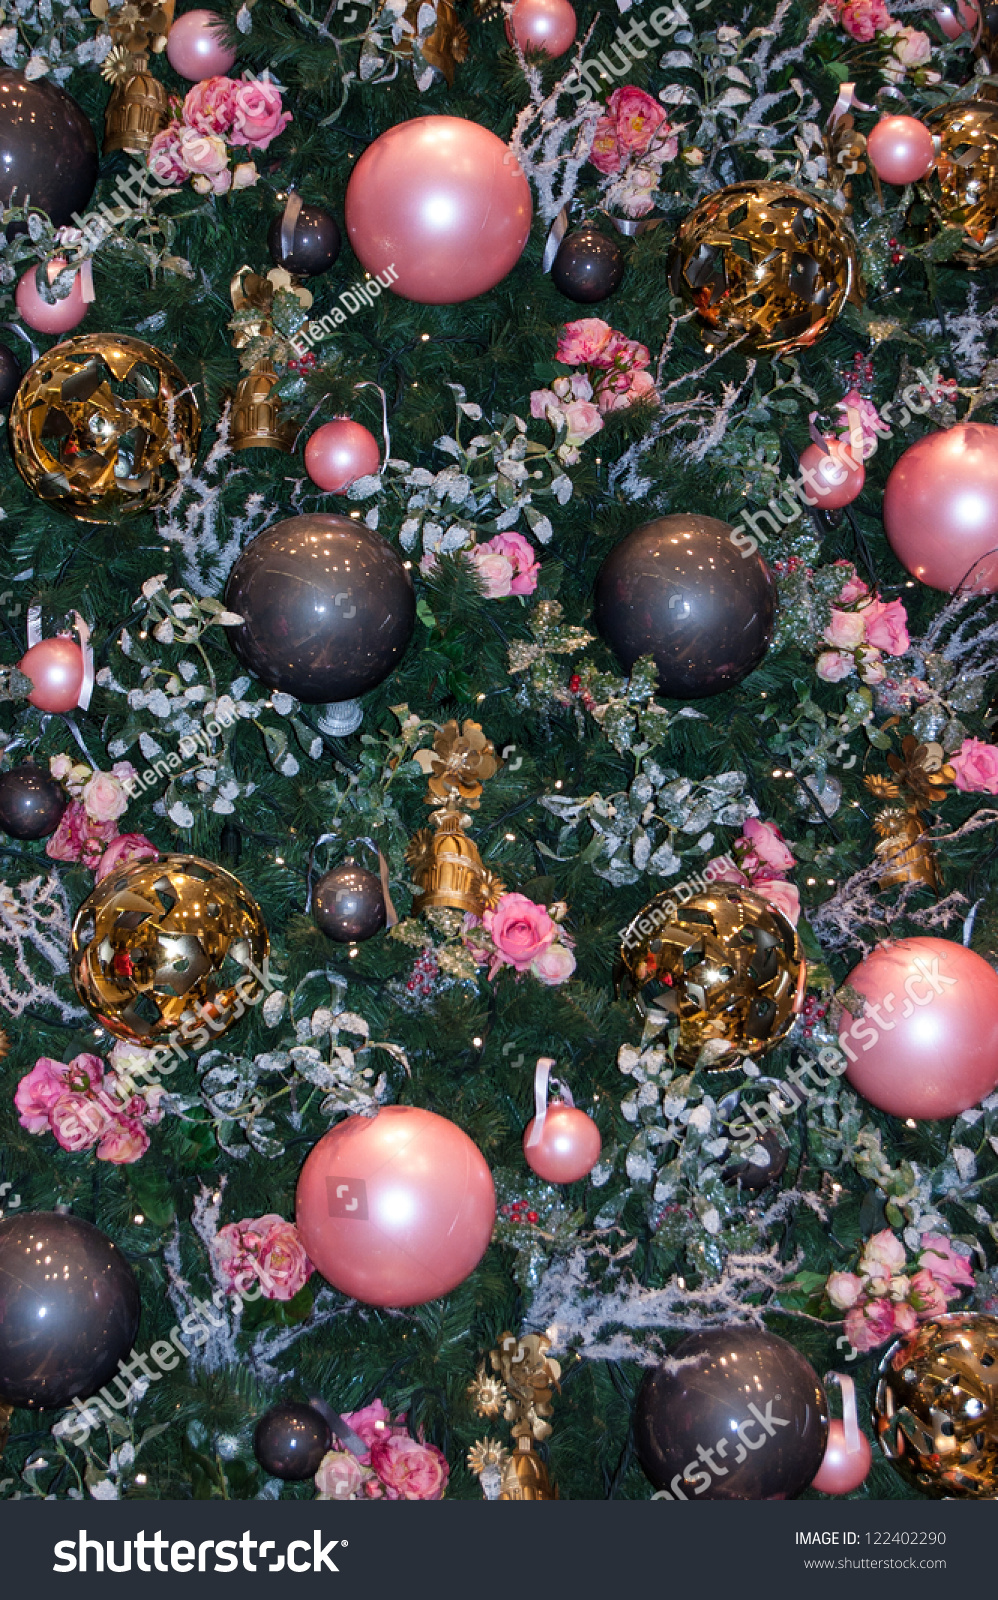 Christmas trees decorated pink - Save To A Lightbox